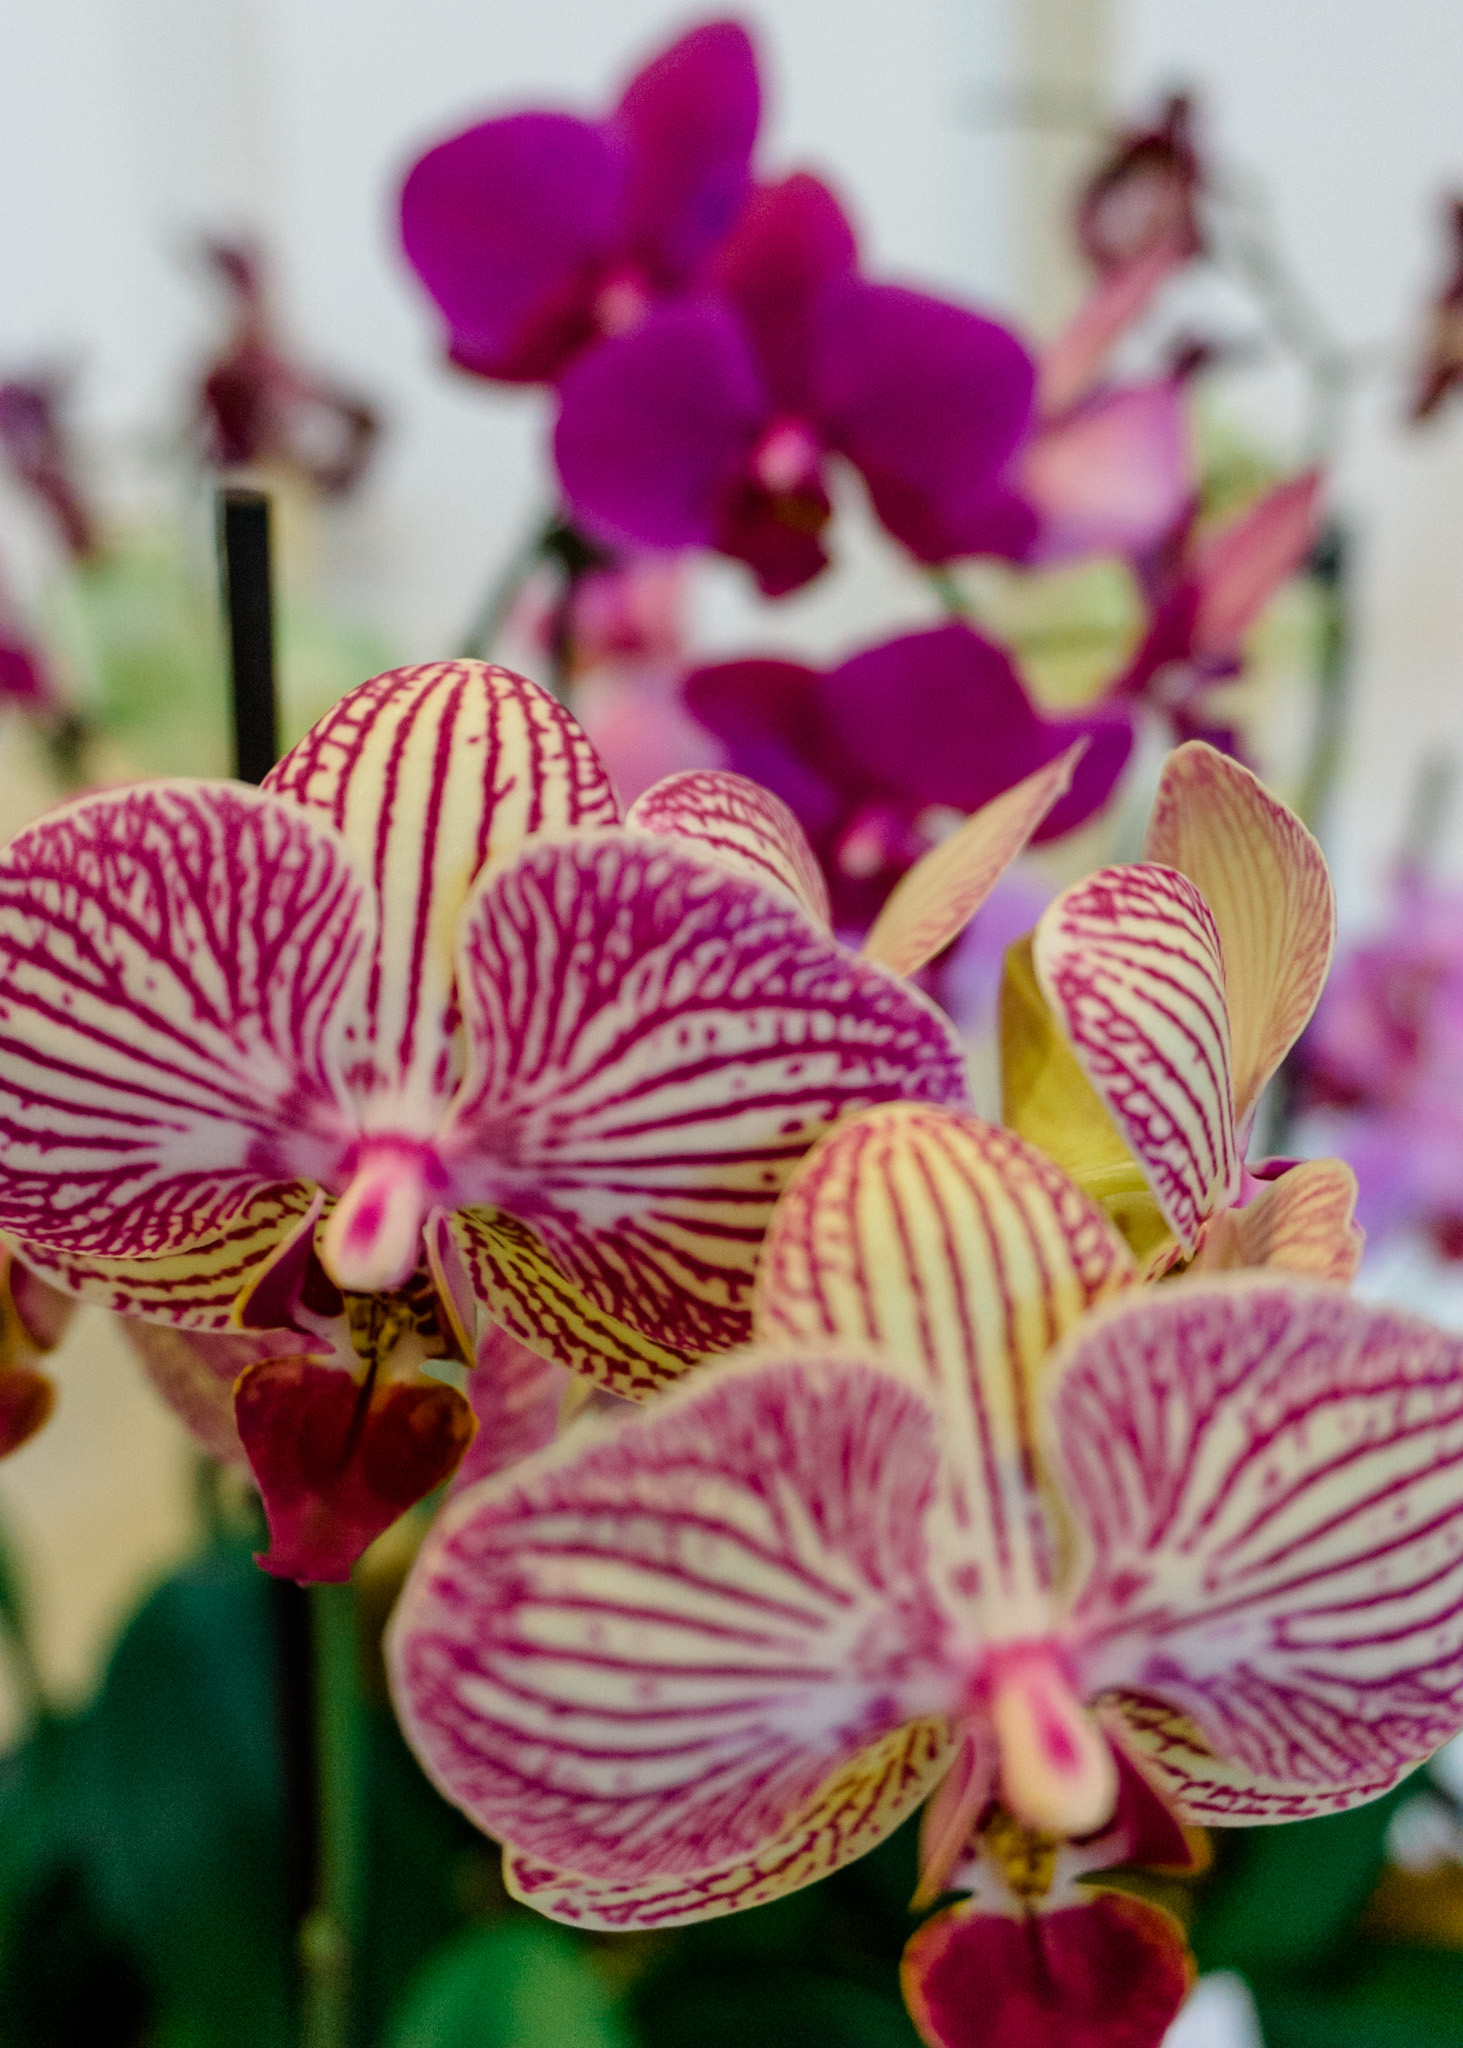 How many kinds of orchids exist?